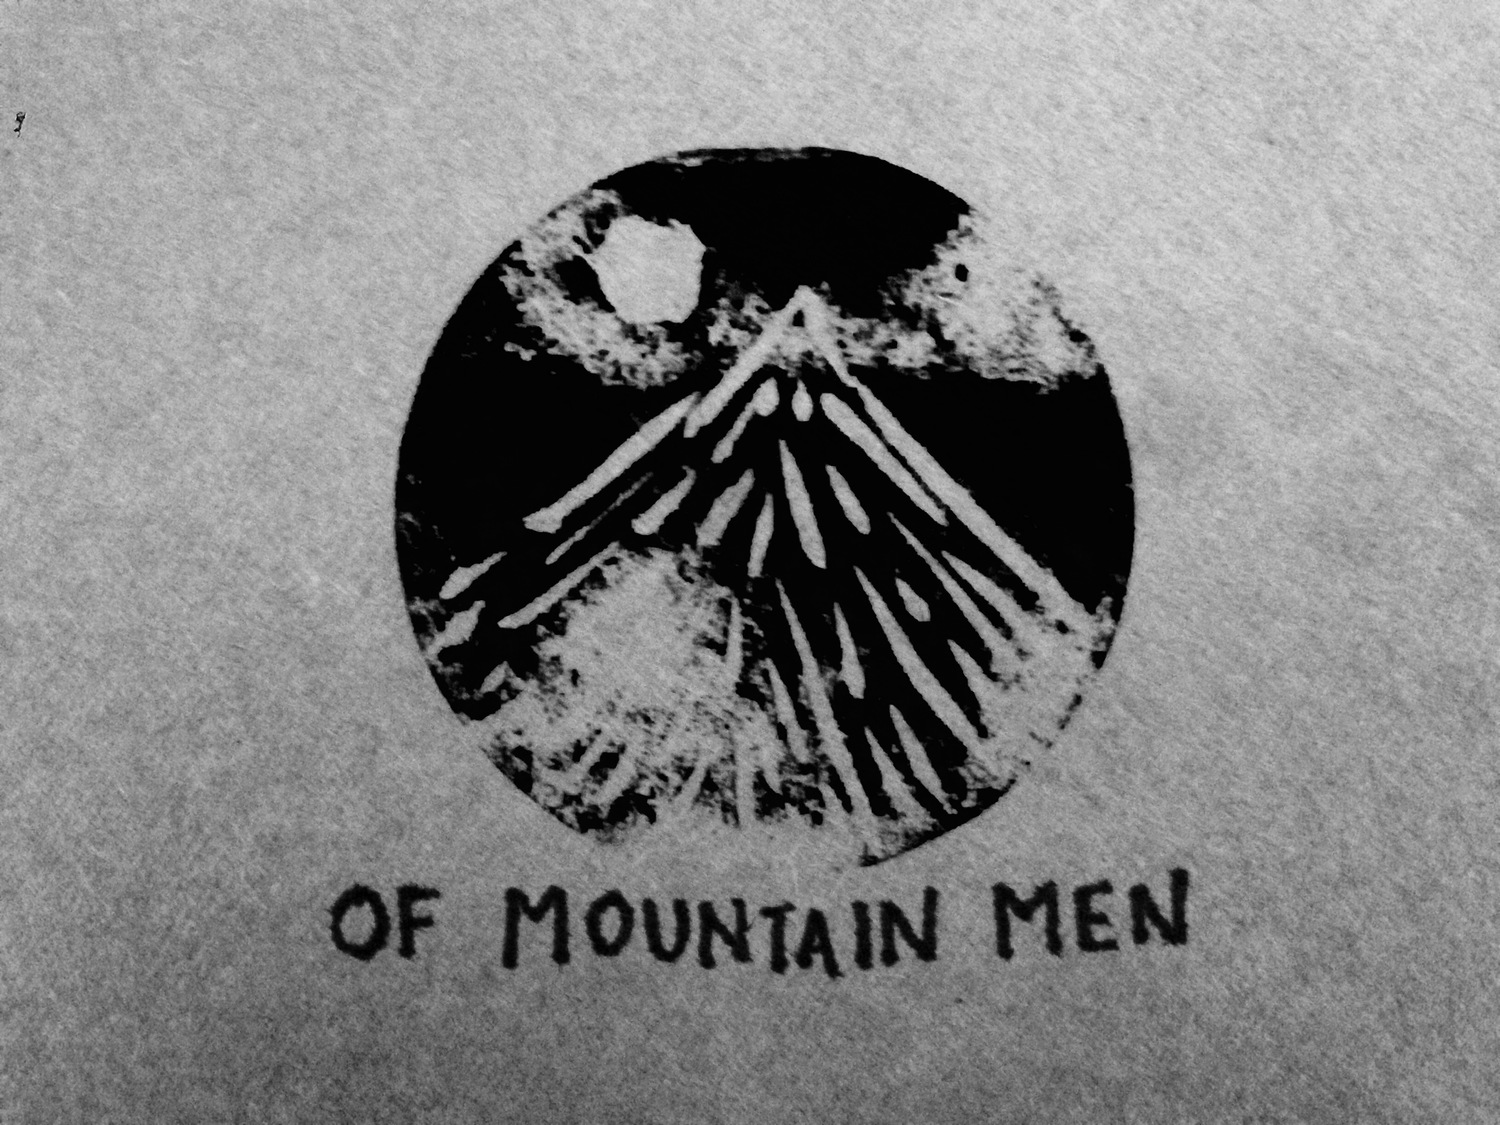 OF MOUNTAIN MEN